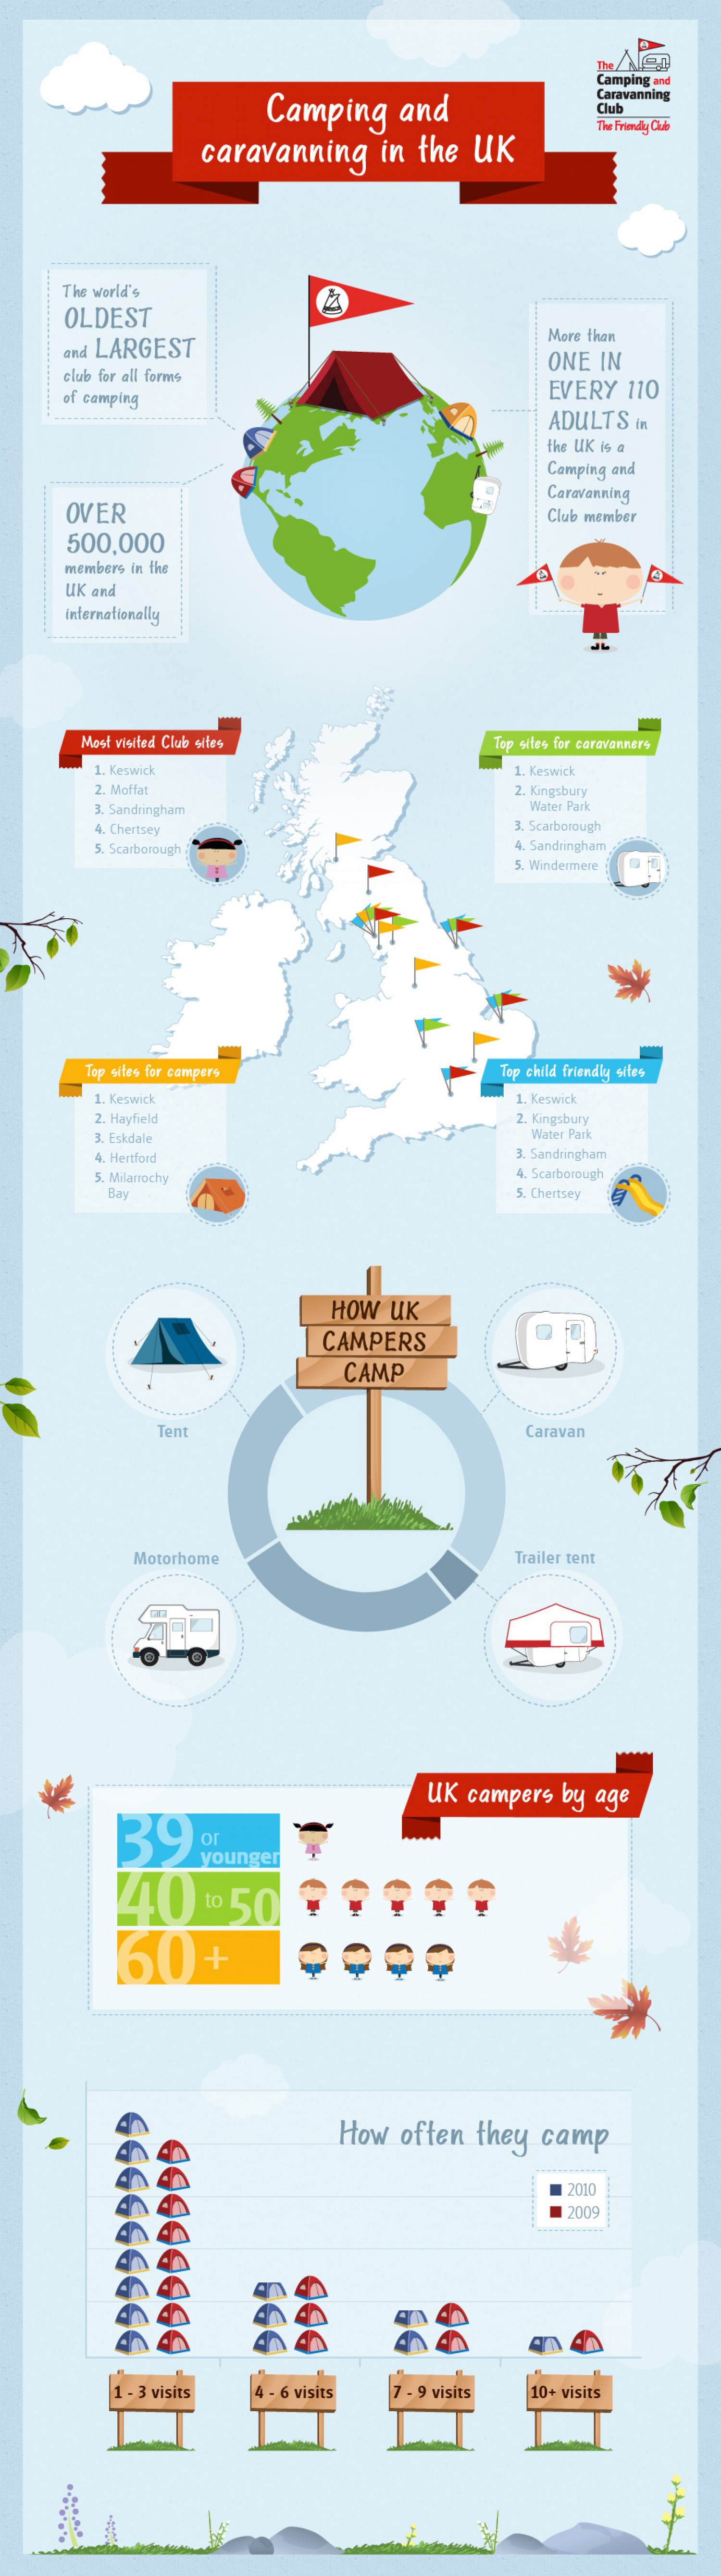 Camping and caravanning in the UK Infographic